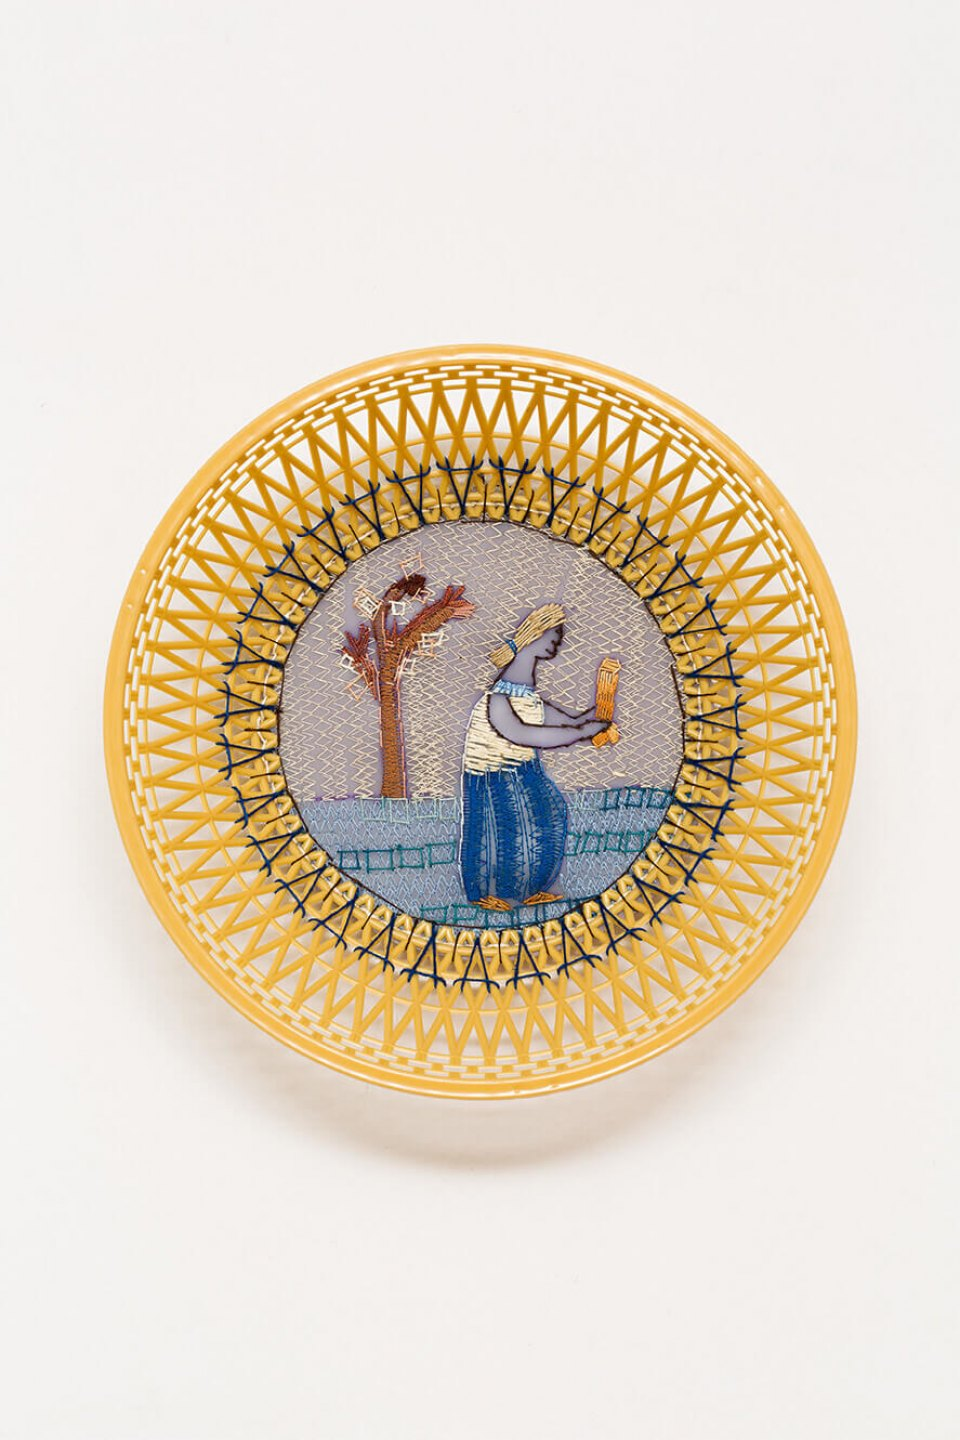 f.marquespeteado, <em>Ninfa fálica, from Wedgwood erótica series,</em> 2009, plastic basket, hand and machine embroidery PVC, 7,5 × 24 cm ø - Mendes Wood DM